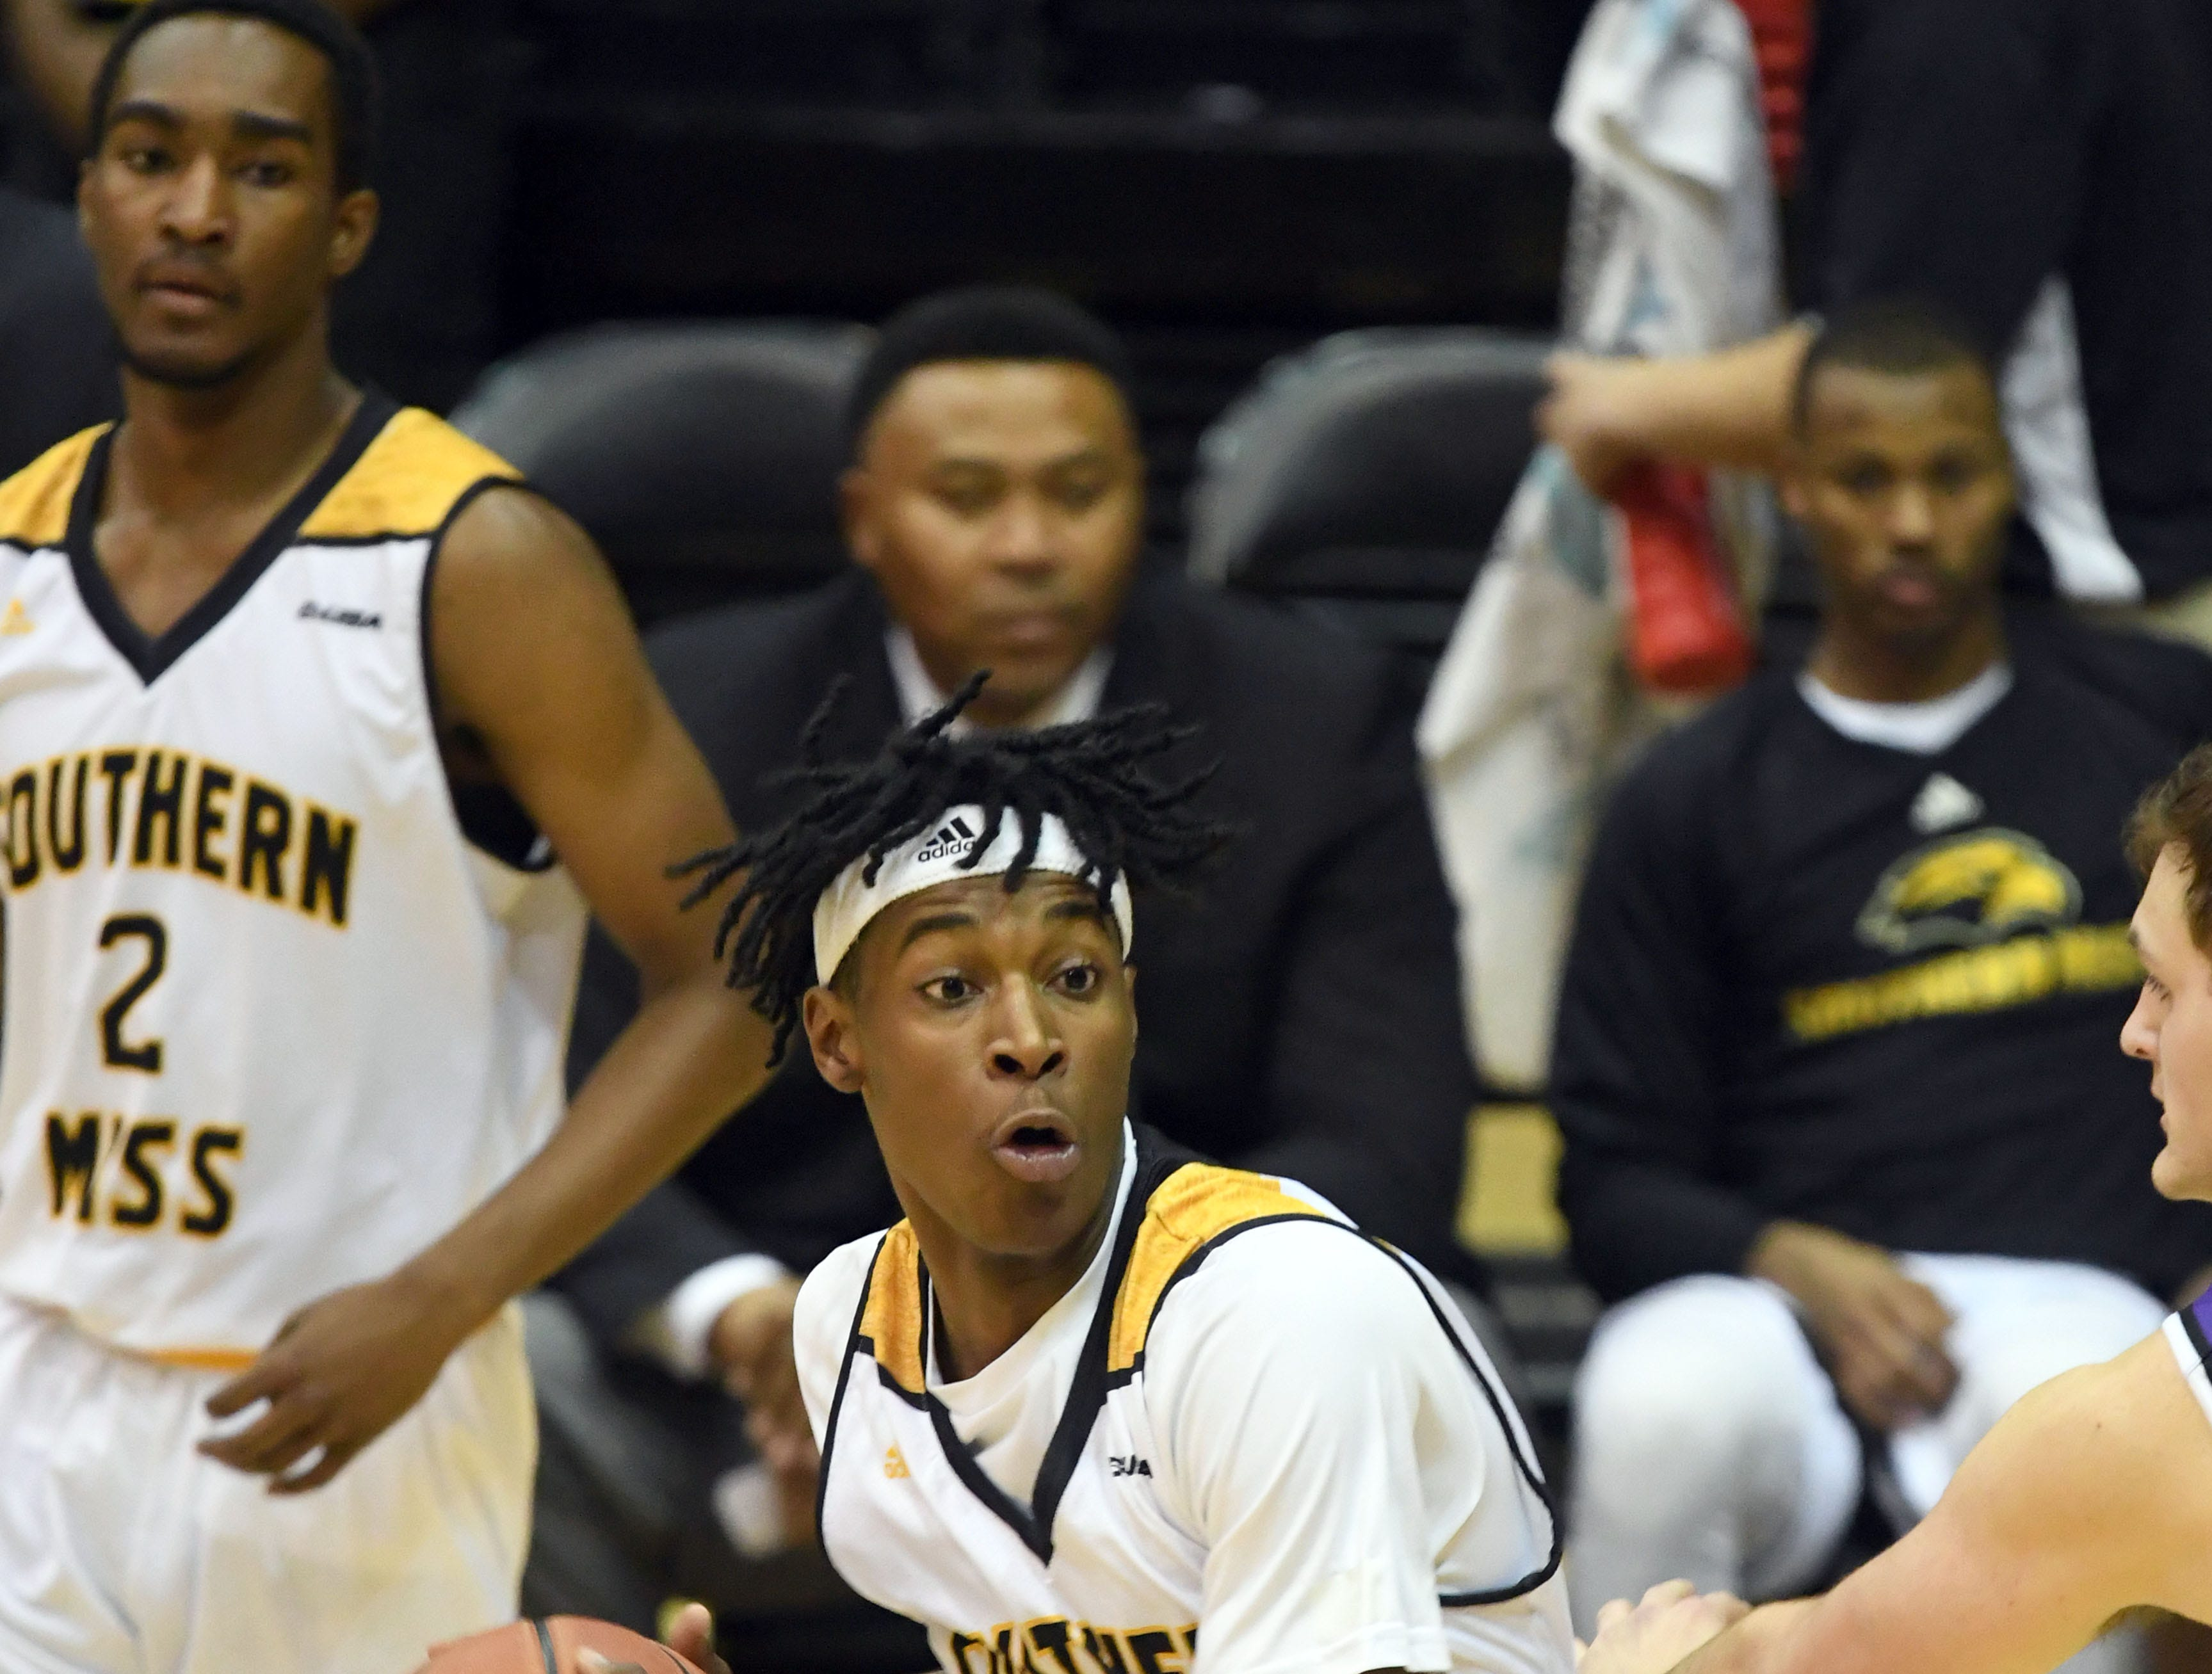 Southern Miss forward Tyler Stevenson takes control of the ball in a game against Millsaps in Reed Green Coliseum on Tuesday, December 11, 2018.